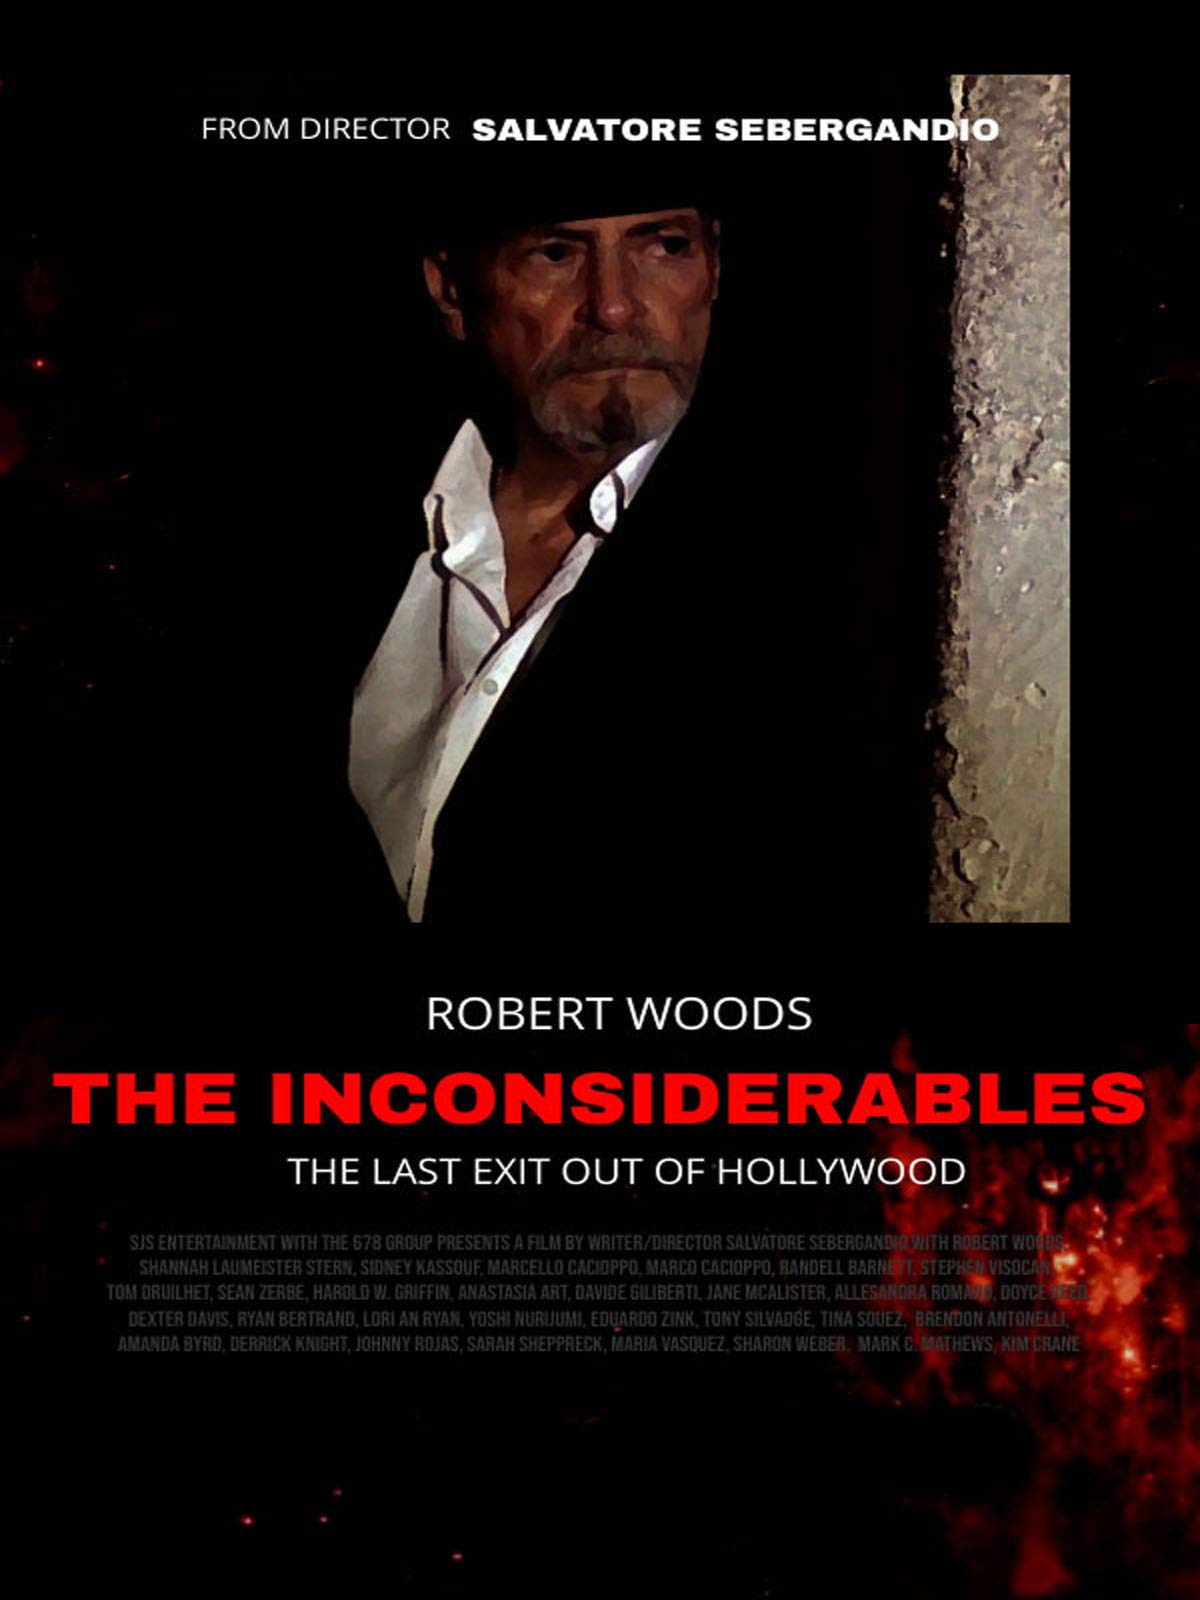 Inconsiderables Last Exit Out of Hollywood